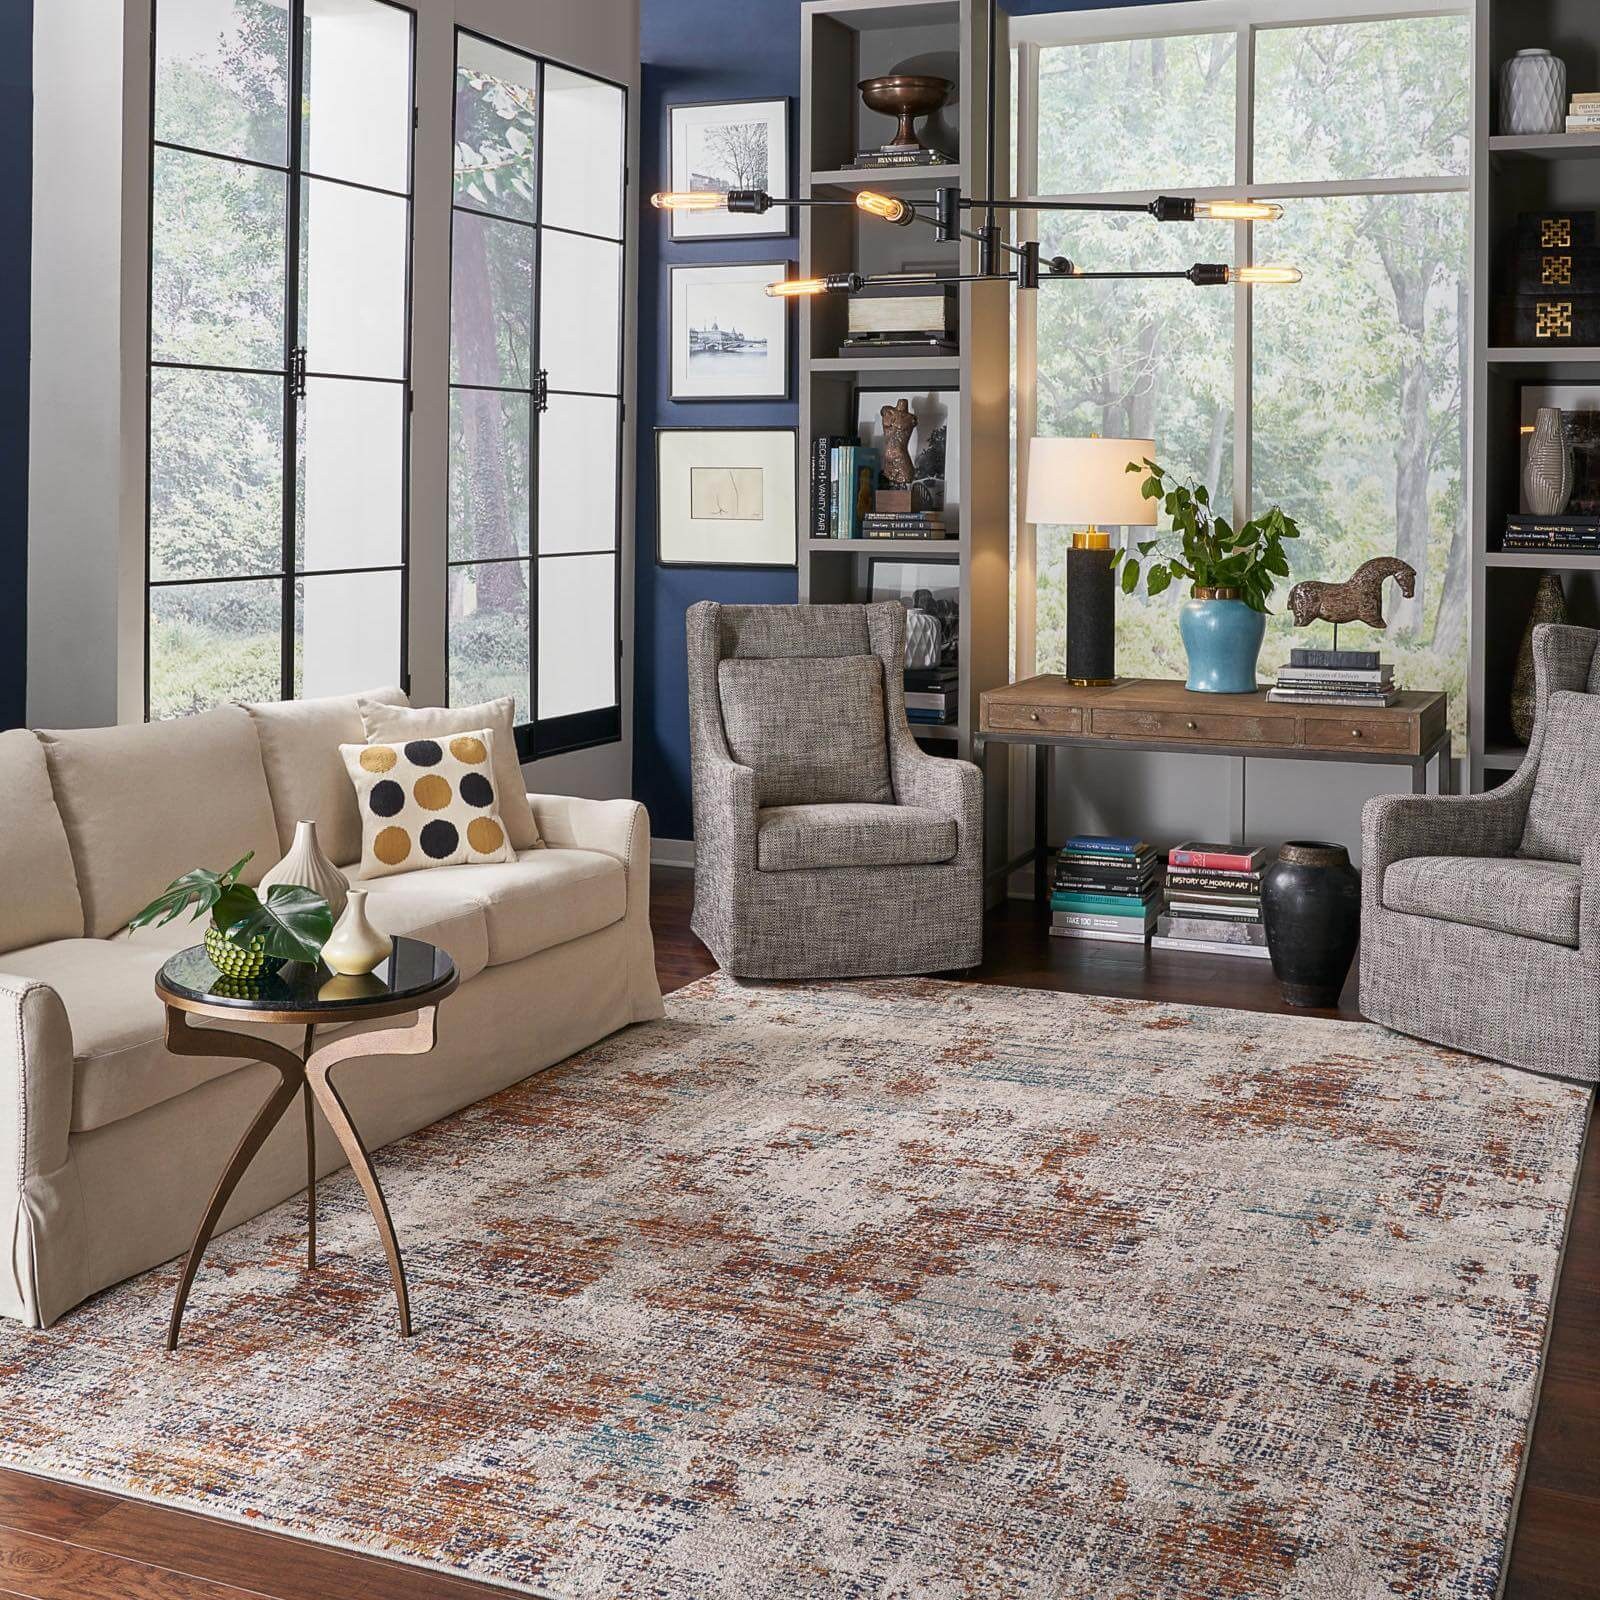 Choosing the Right Size Area Rug | Shan's Carpets & Fine Flooring